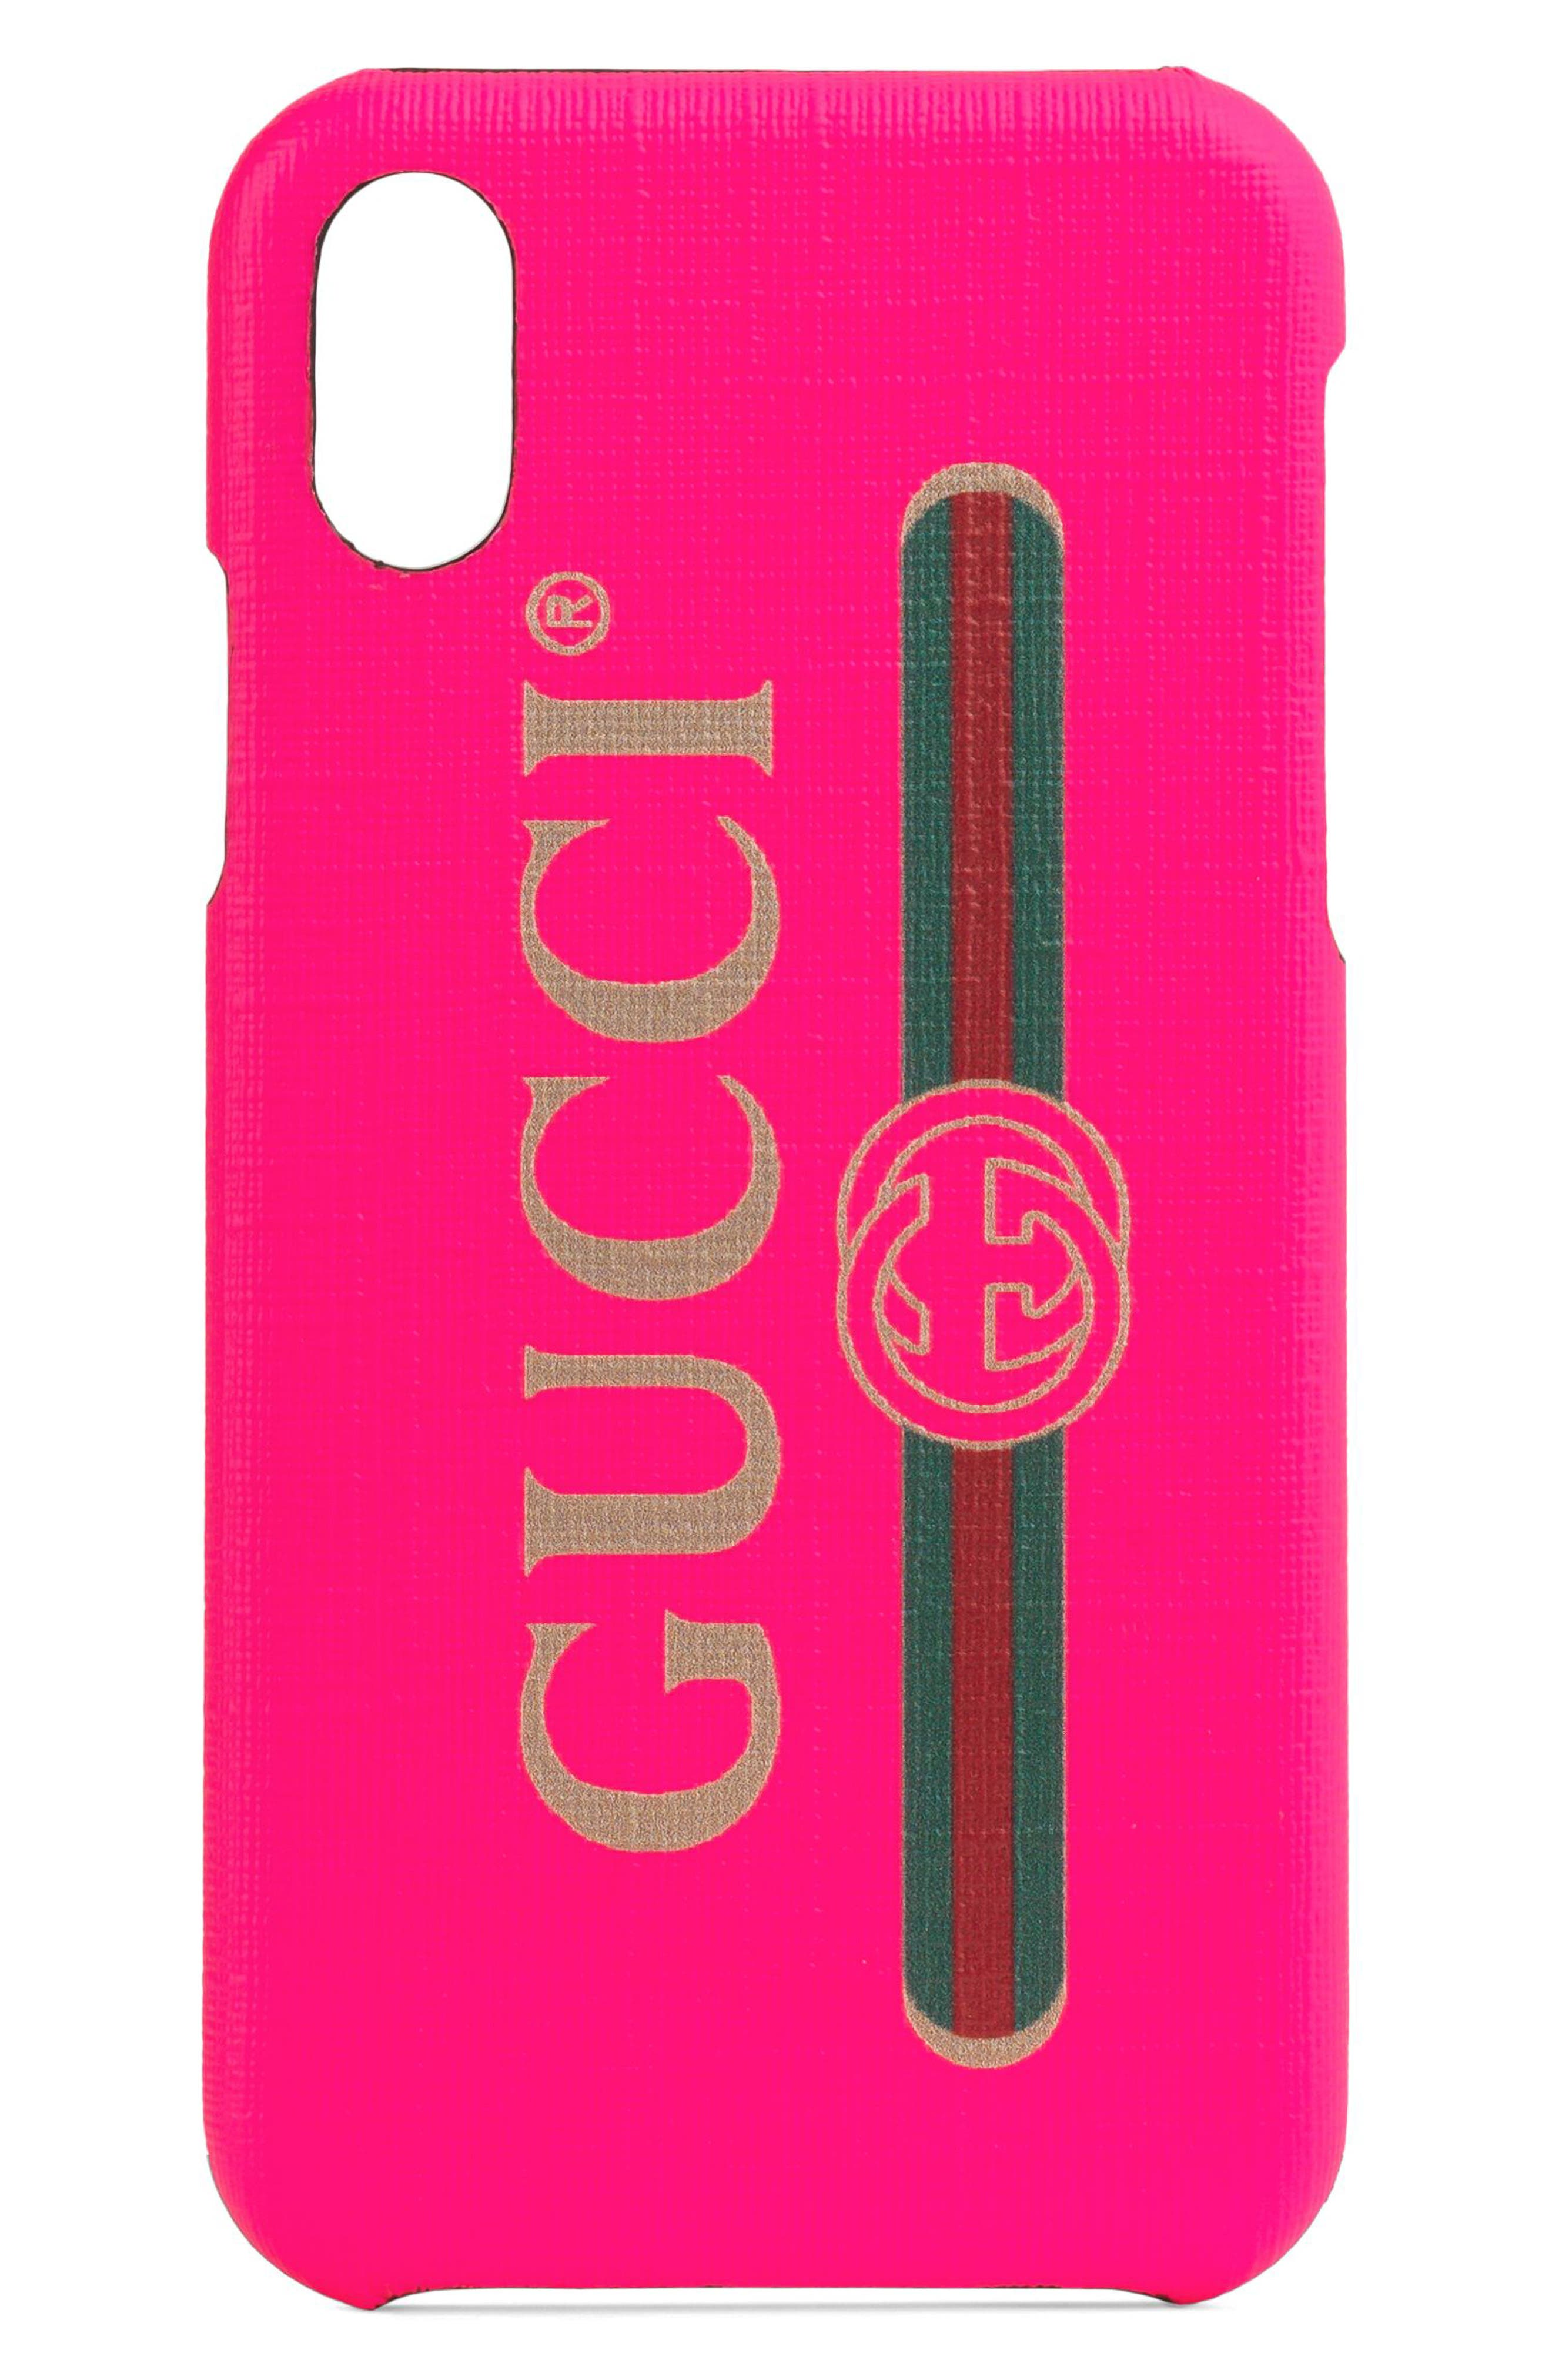 gucci cell phone casesDesigner Phone Cases Iphone 8 Iphone 8 Case Price Apple Iphone Case 8 Custom Iphone Skins Buy Iphone 8 Cases Online Chanel #20